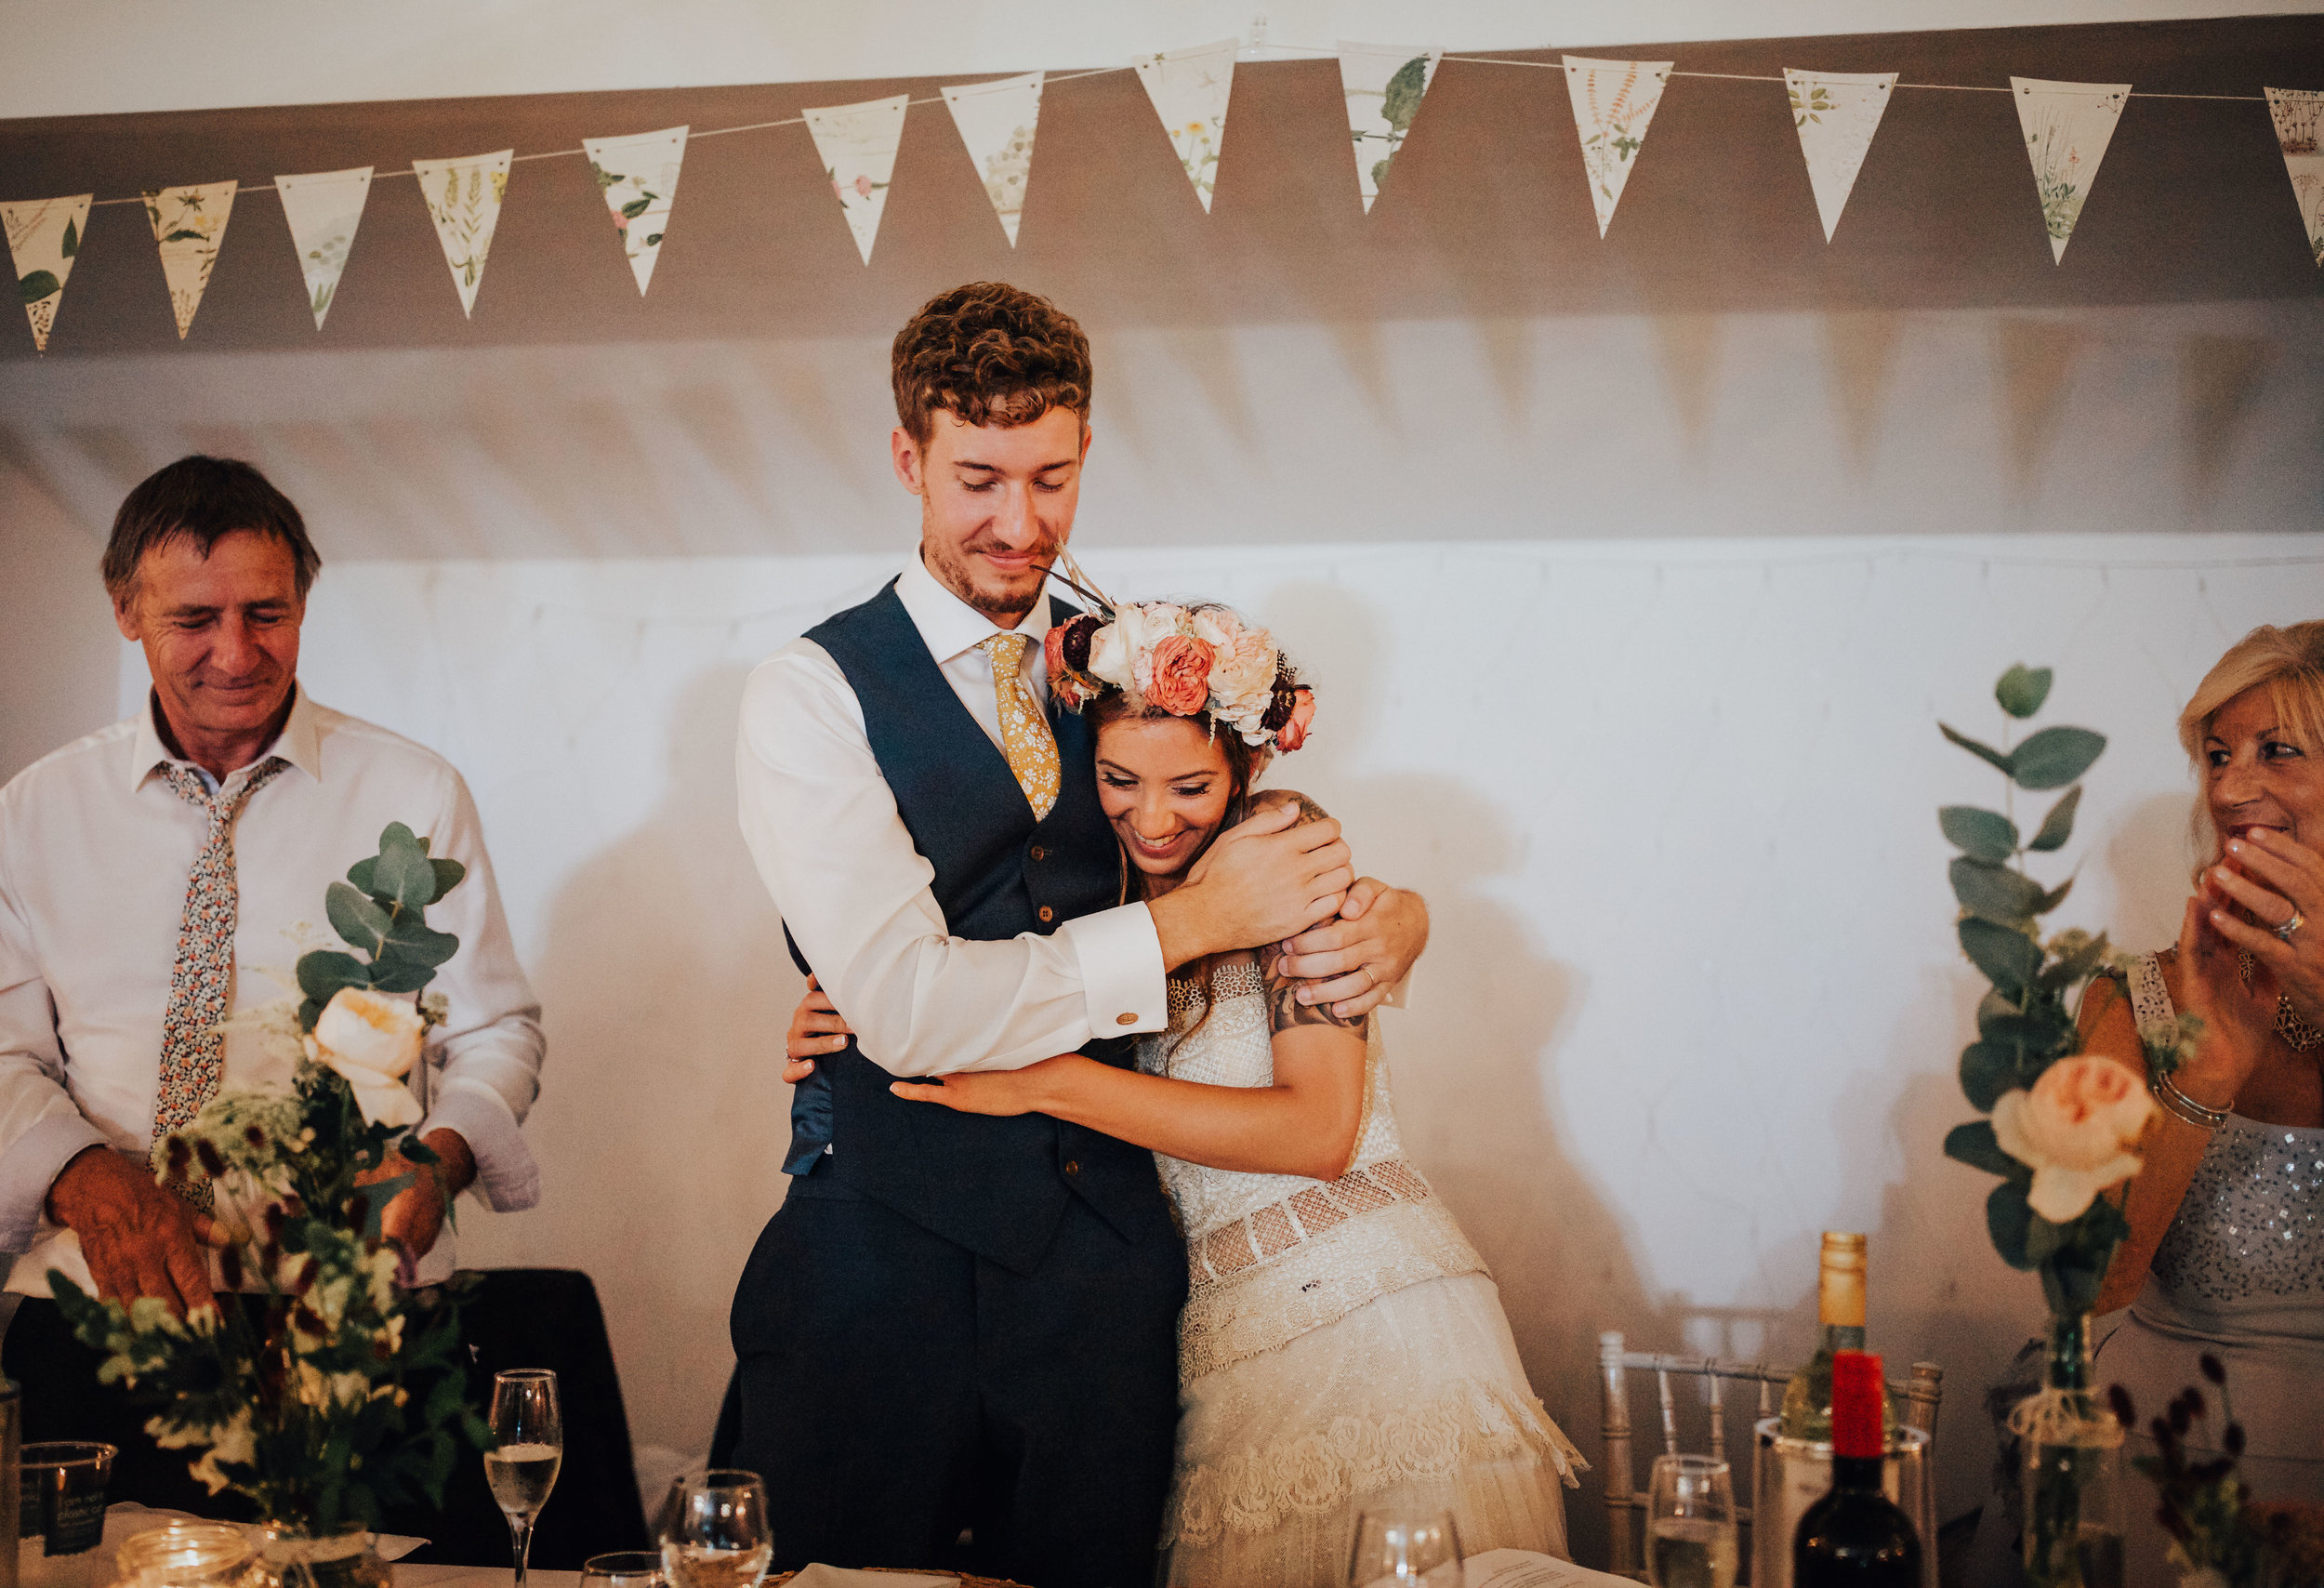 TWO_WOODS_ESTATE_WEDDING_PULBOROUGH_PJ_PHILLIPS_PHOTOGRAPHY_FRAN_&_GEORGE_186.jpg